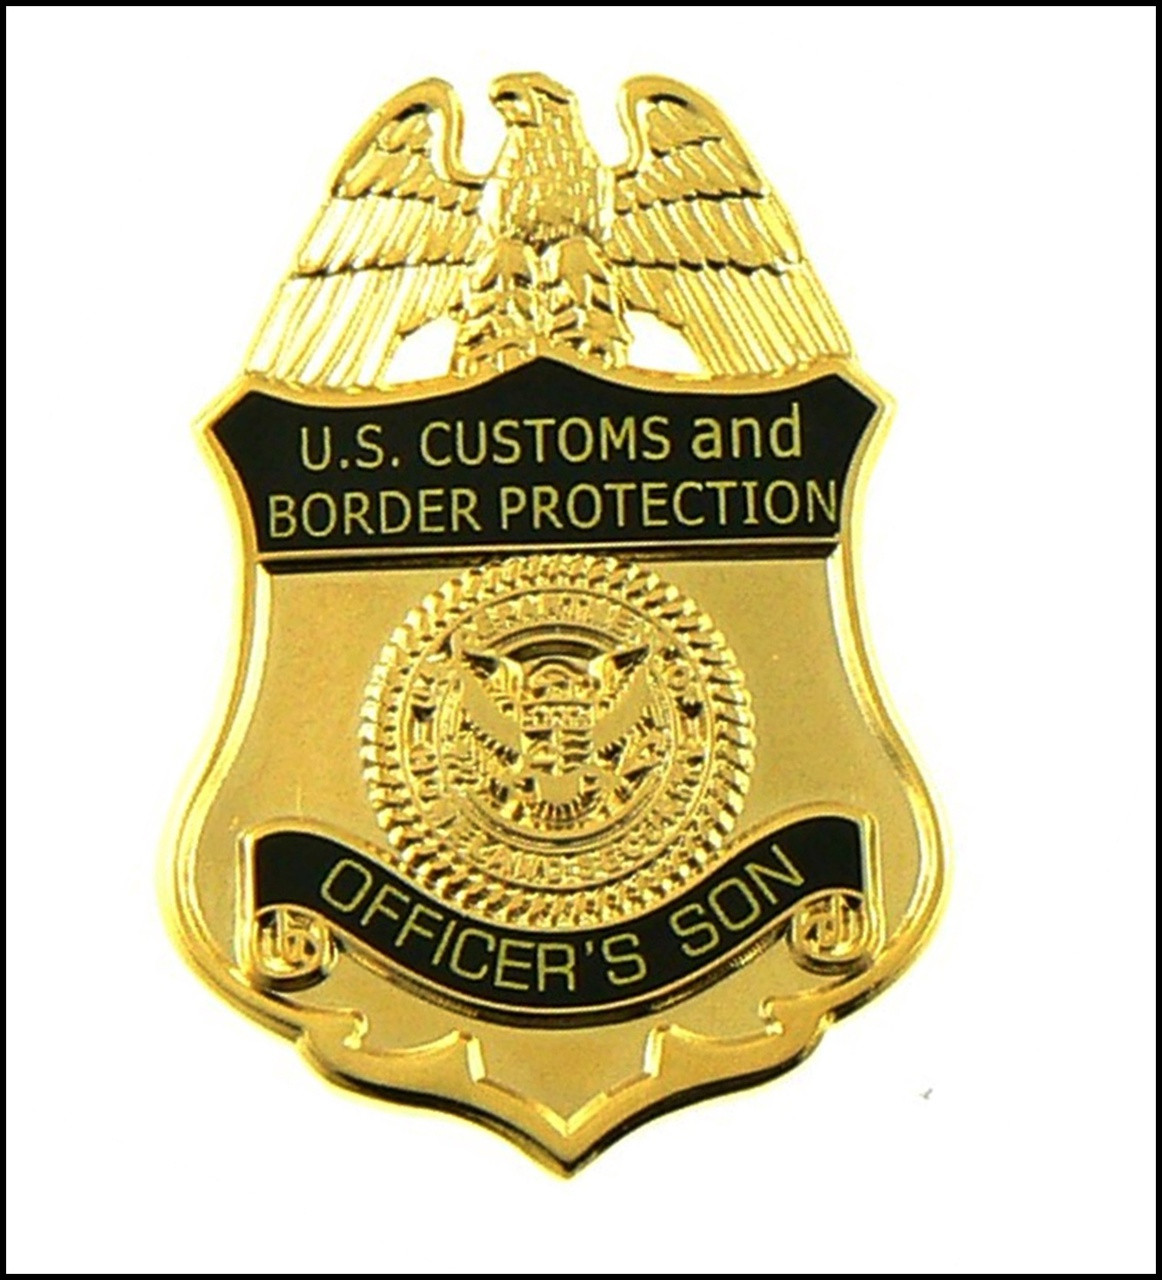 Customs and Border Protection Officers Son Mini Badge Magnet